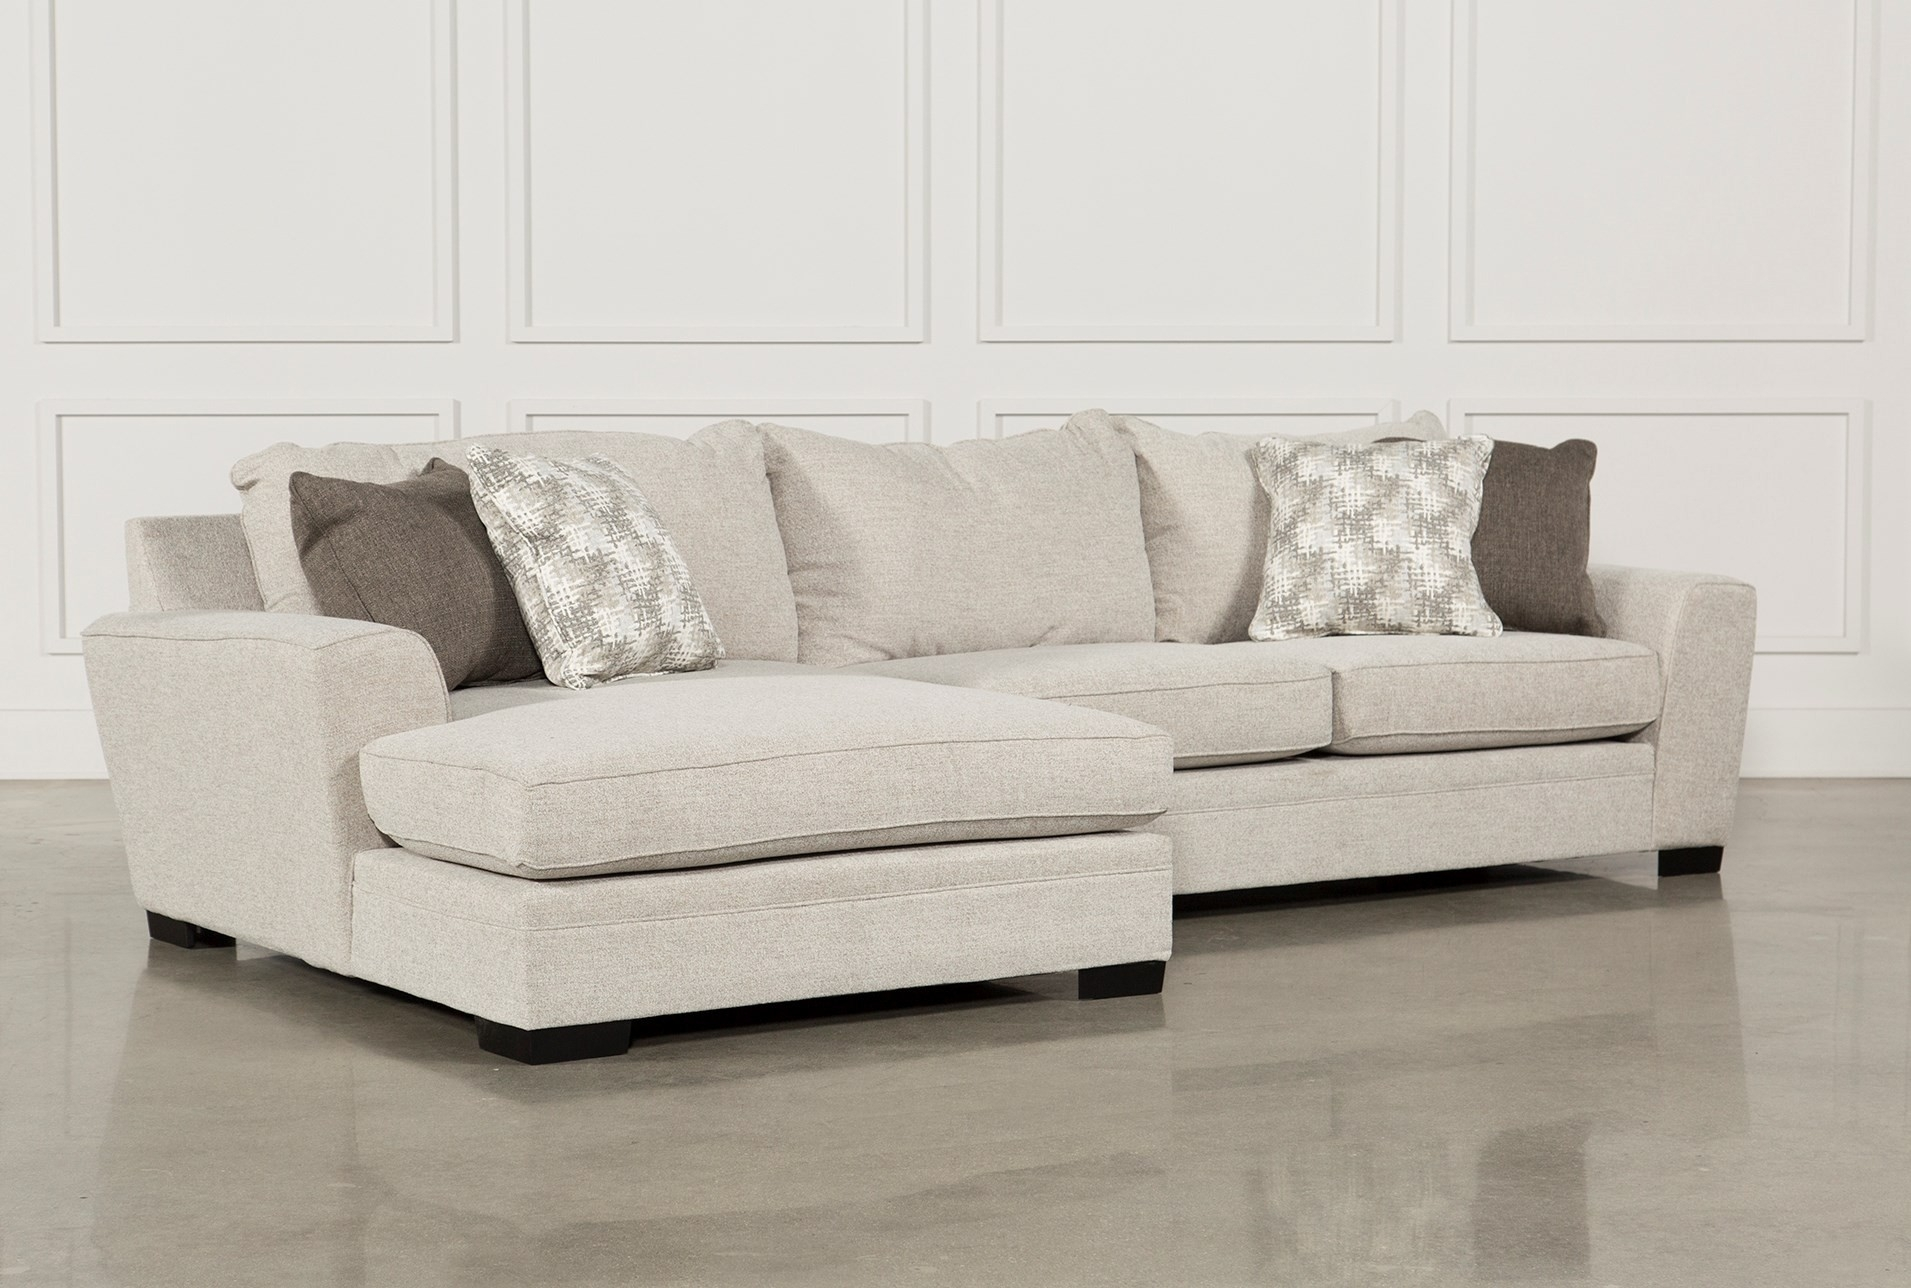 Living Spaces Sectional Sofas Kerri 2 Piece W Raf Chaise 107153 0 pertaining to Kerri 2 Piece Sectionals With Raf Chaise (Image 25 of 30)